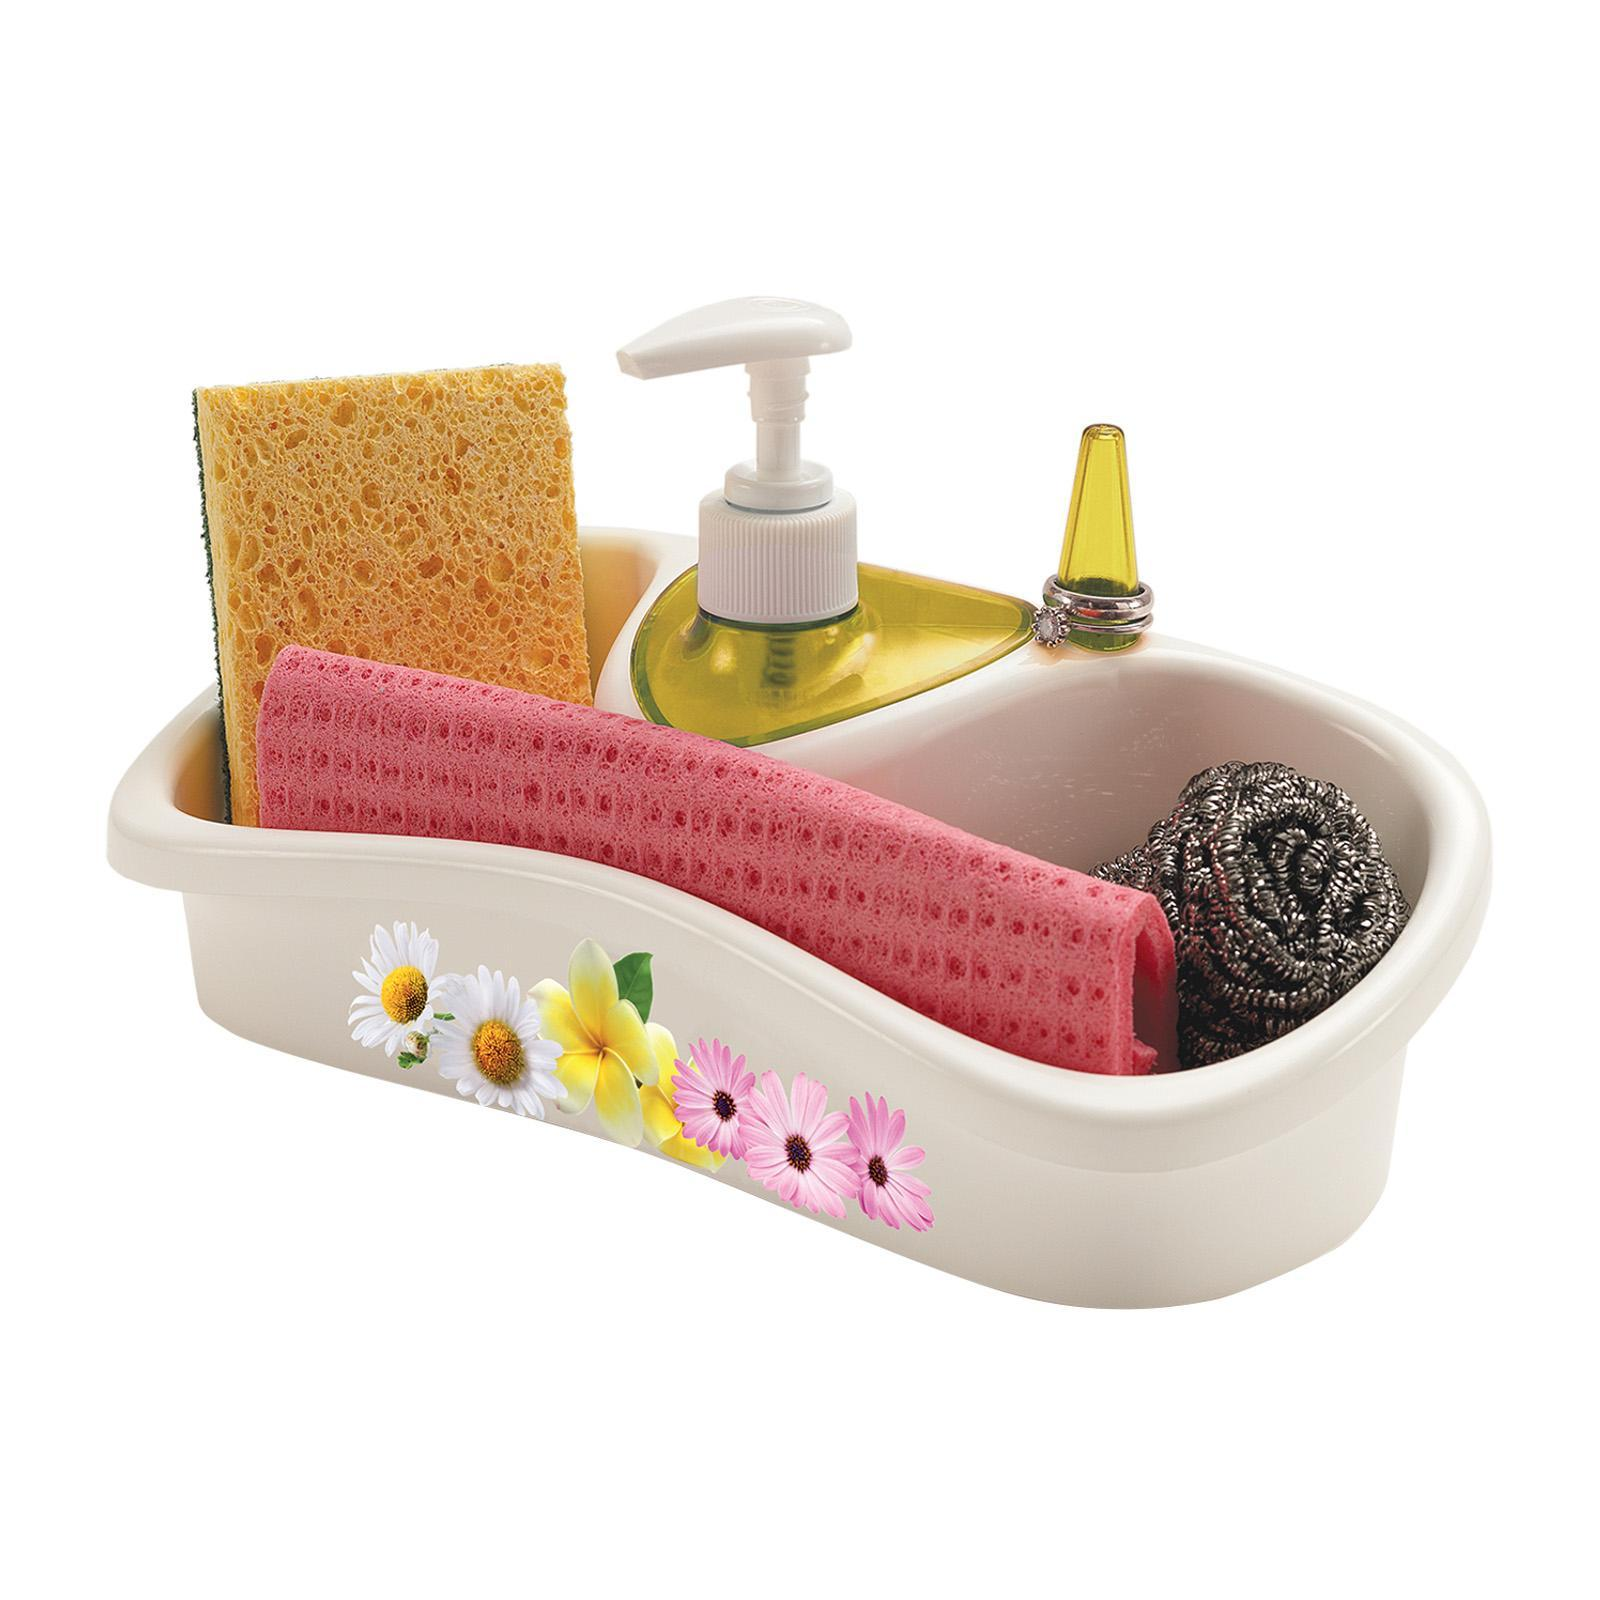 Snips Saponello Sponge Holder